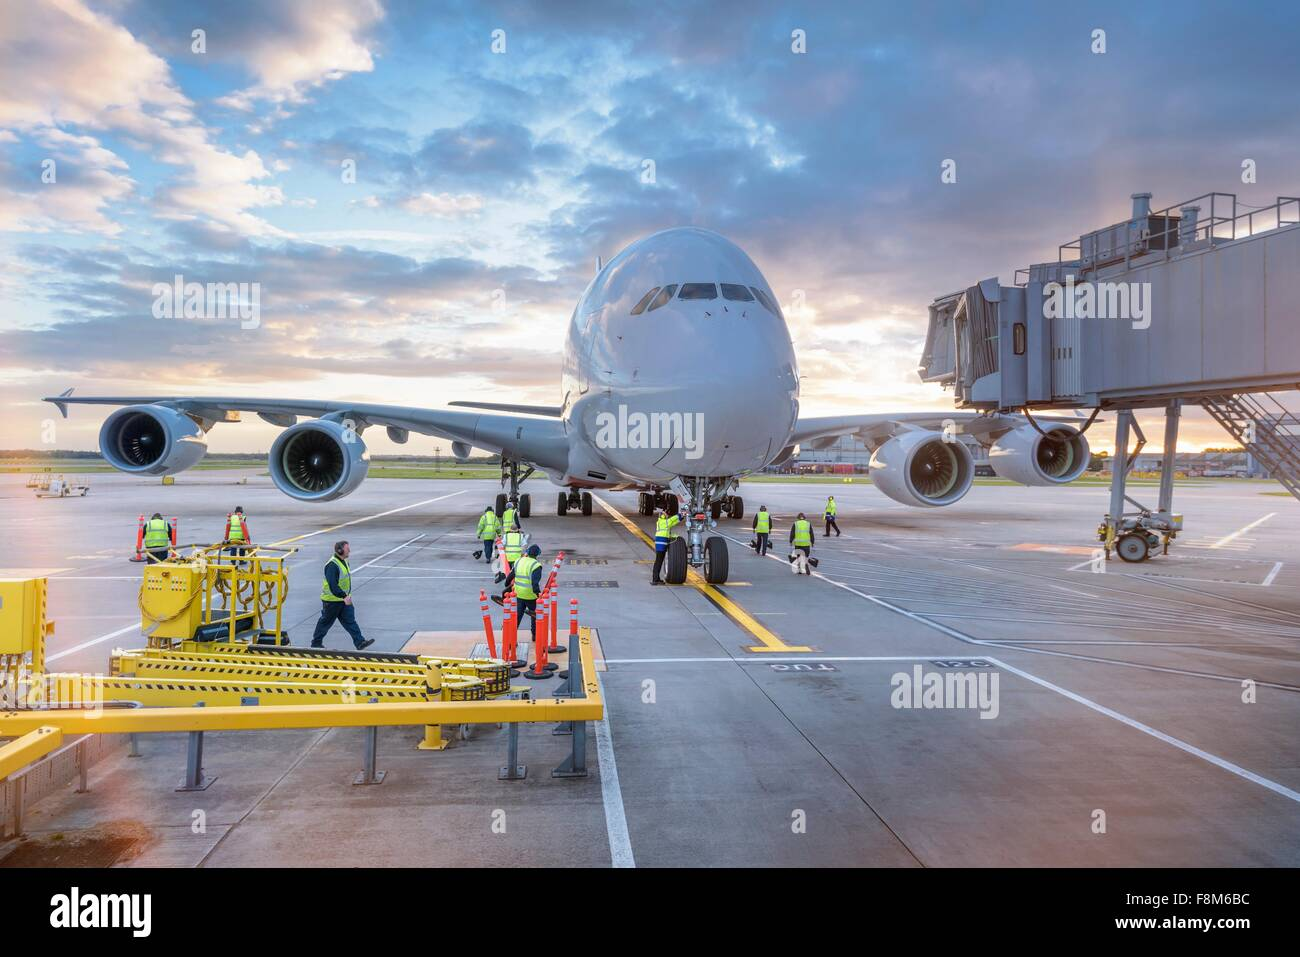 Ground crew attending to A380 aircraft at airport - Stock Image